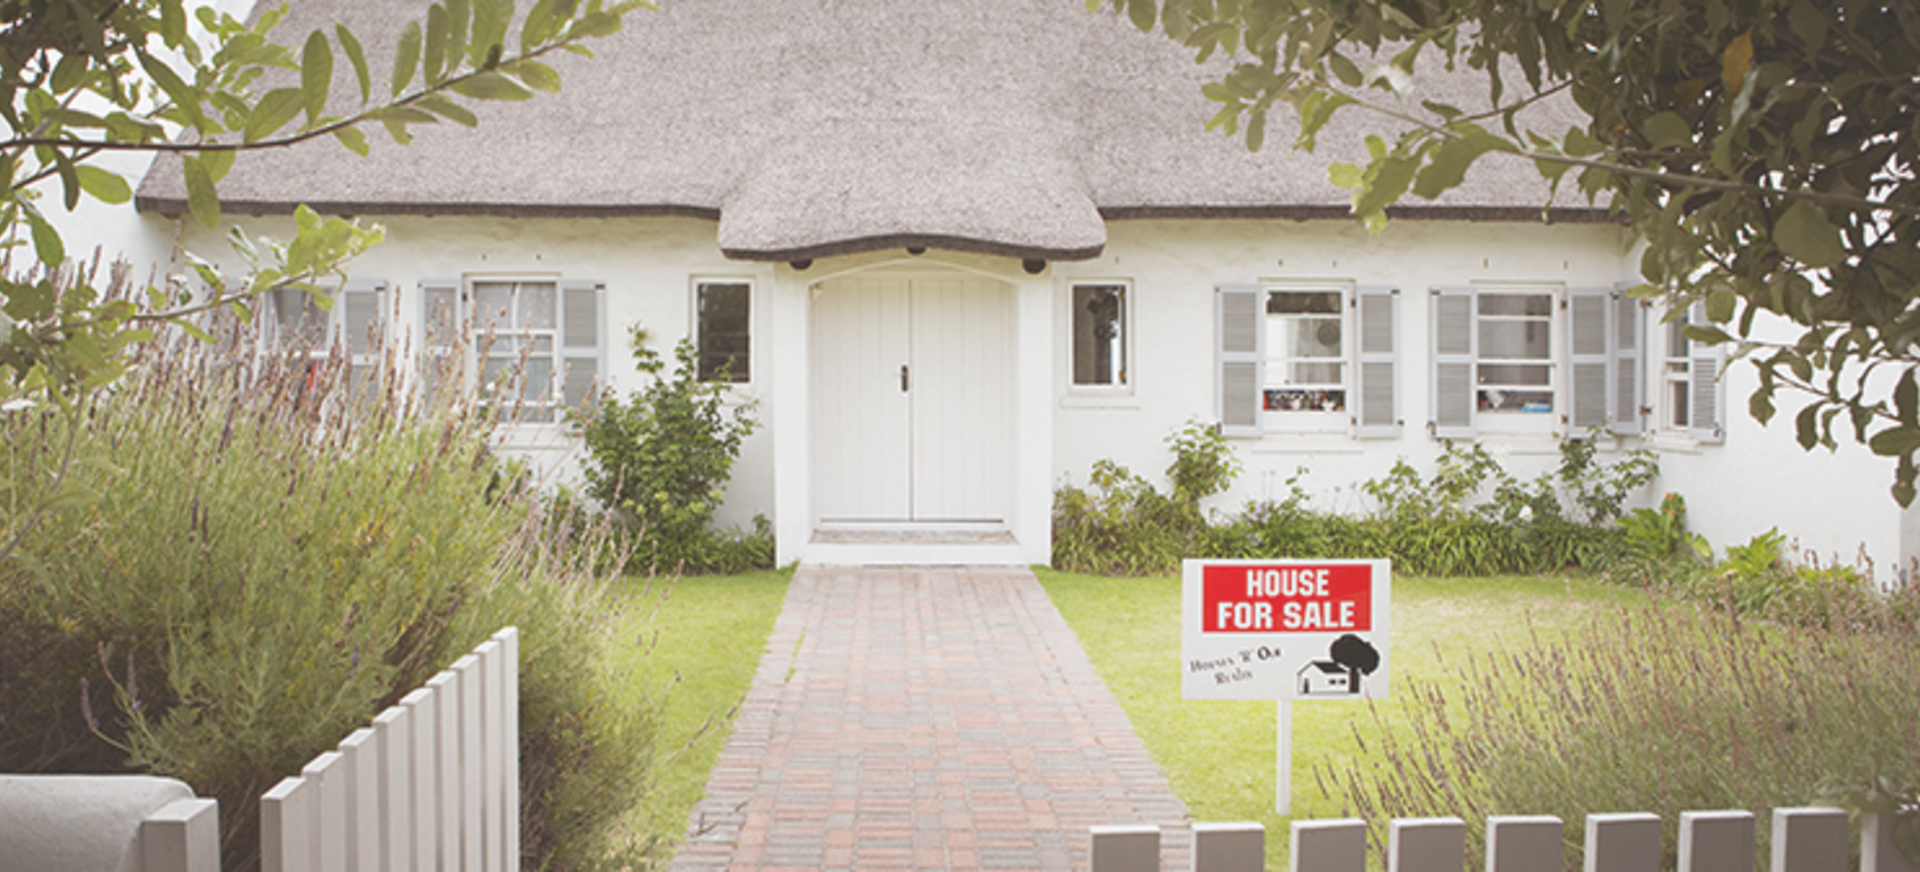 Is increasing inventory a Bullish or Bearish Sign for Real Estate?